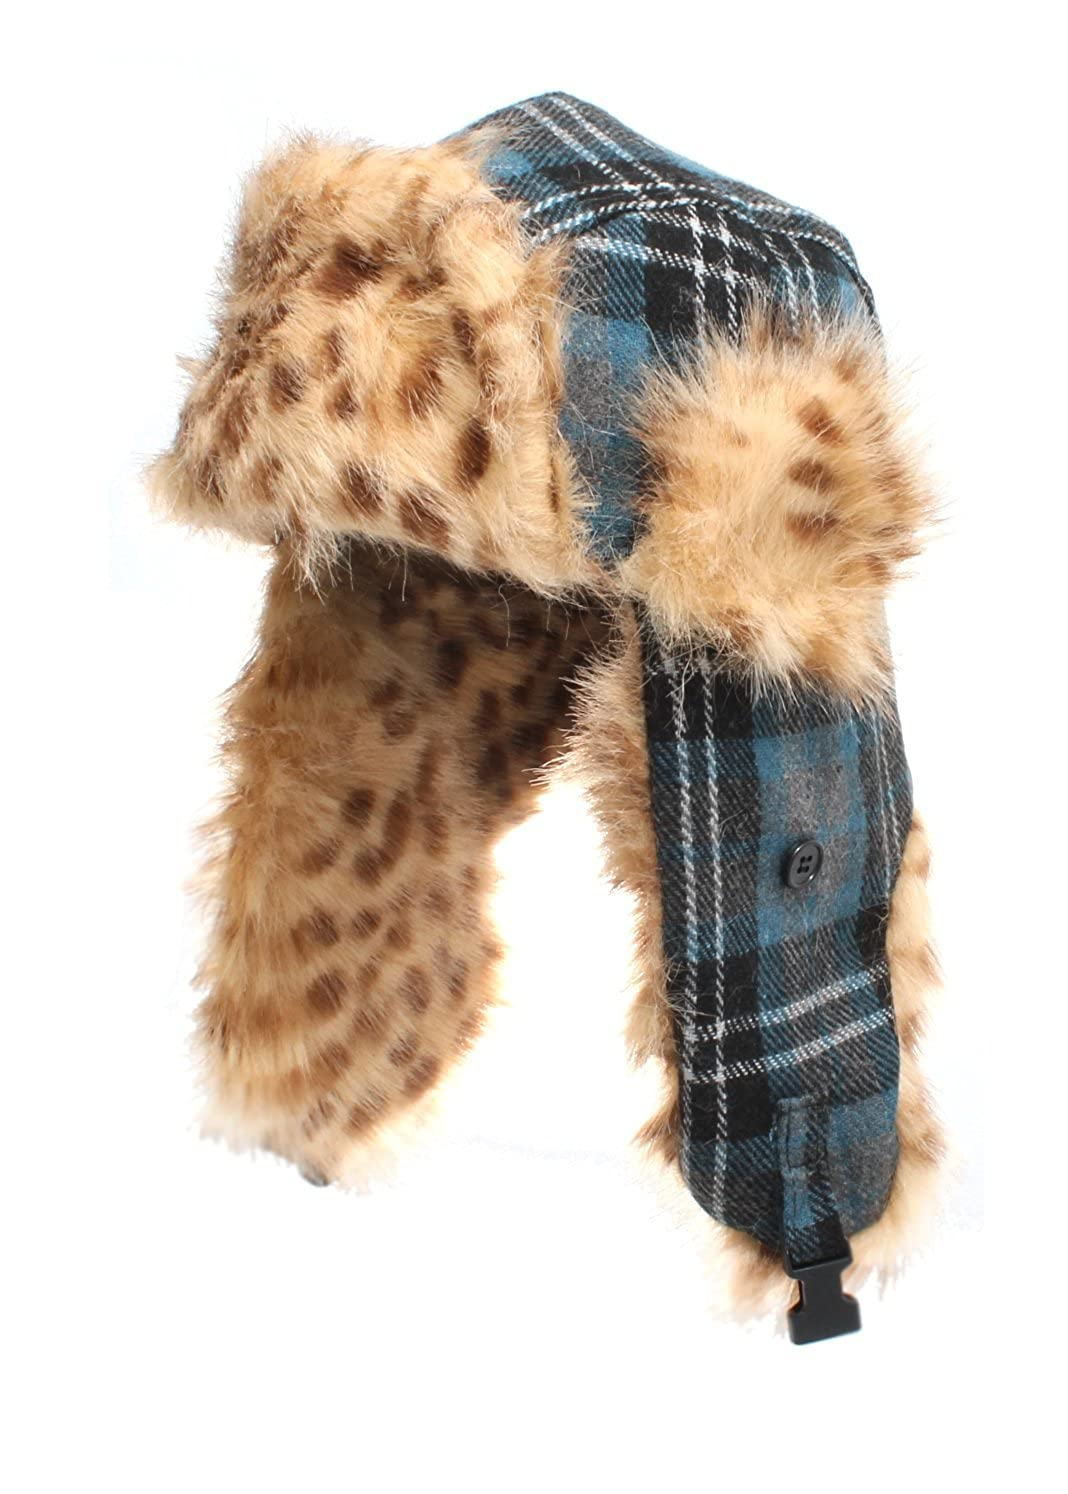 Blue Checked Trapper Hat with Animal Spotted Faux Fur Lining available in sizes 58cm or 59cm